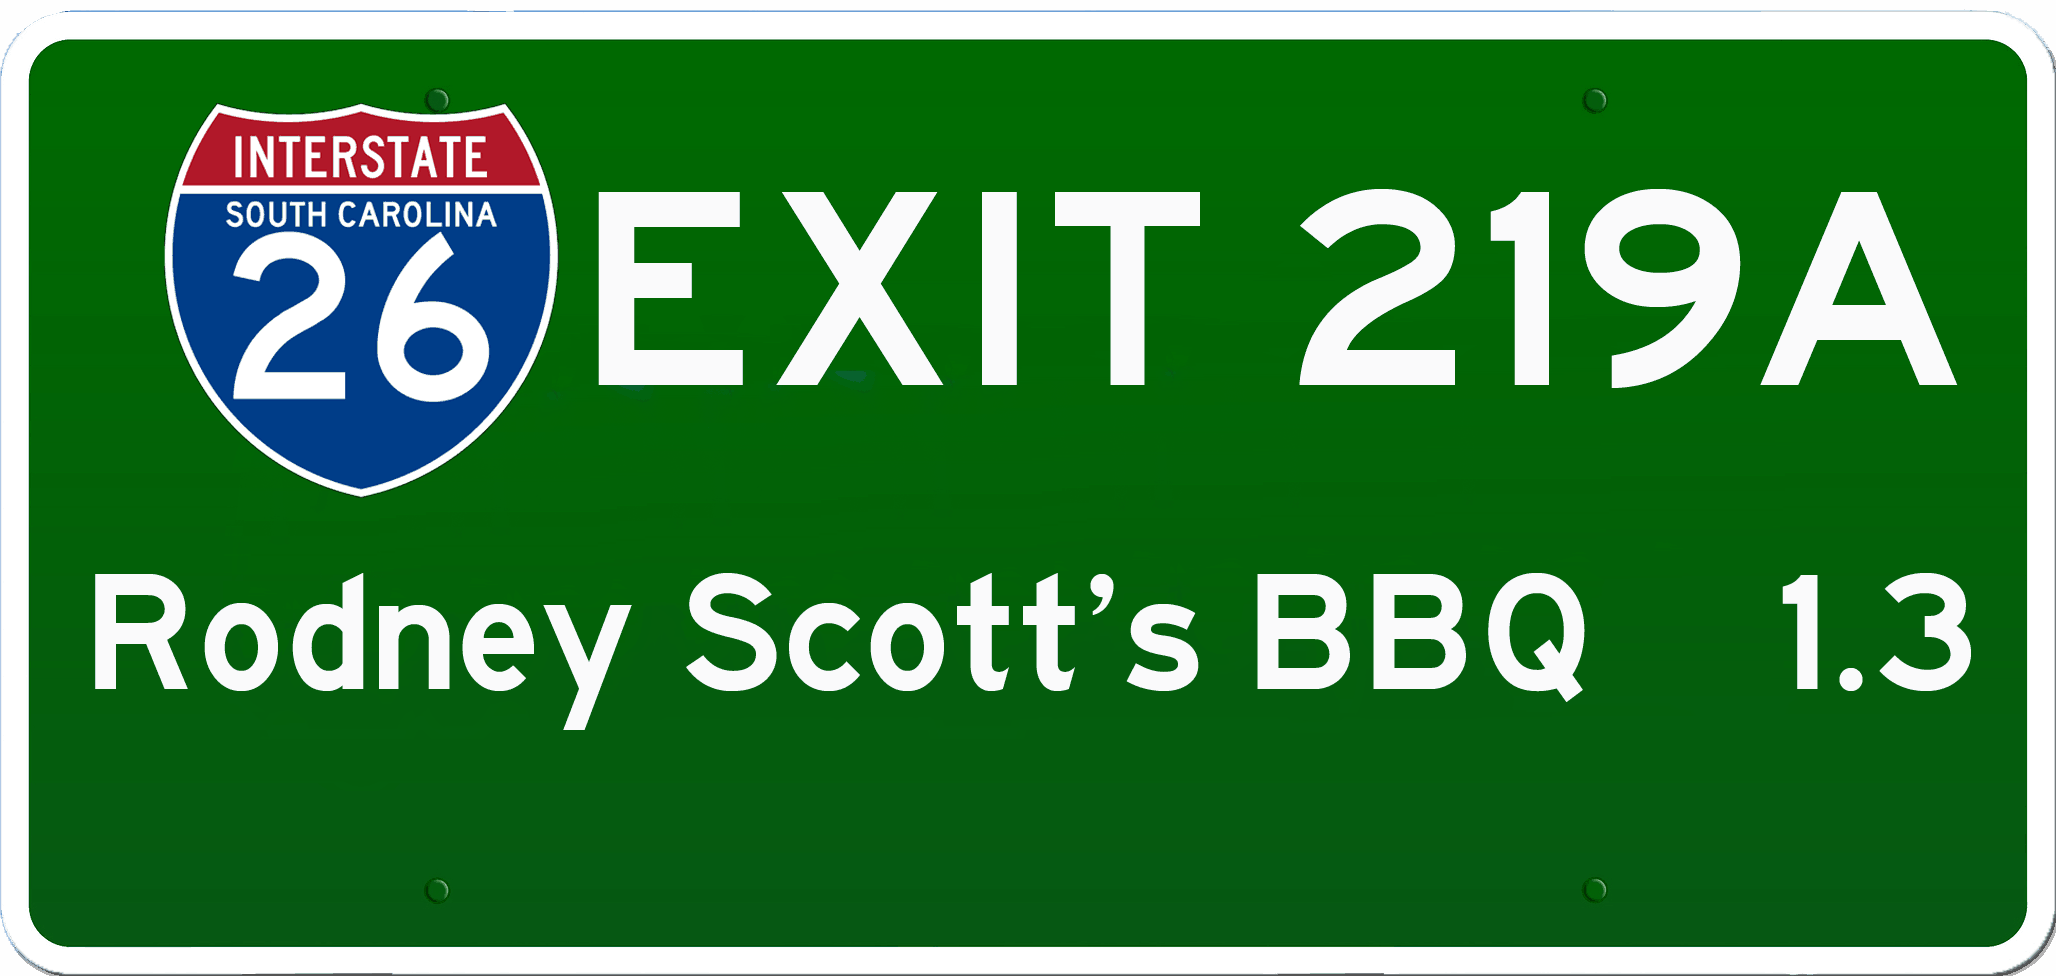 C BBQ on I-26 at Exit 219A